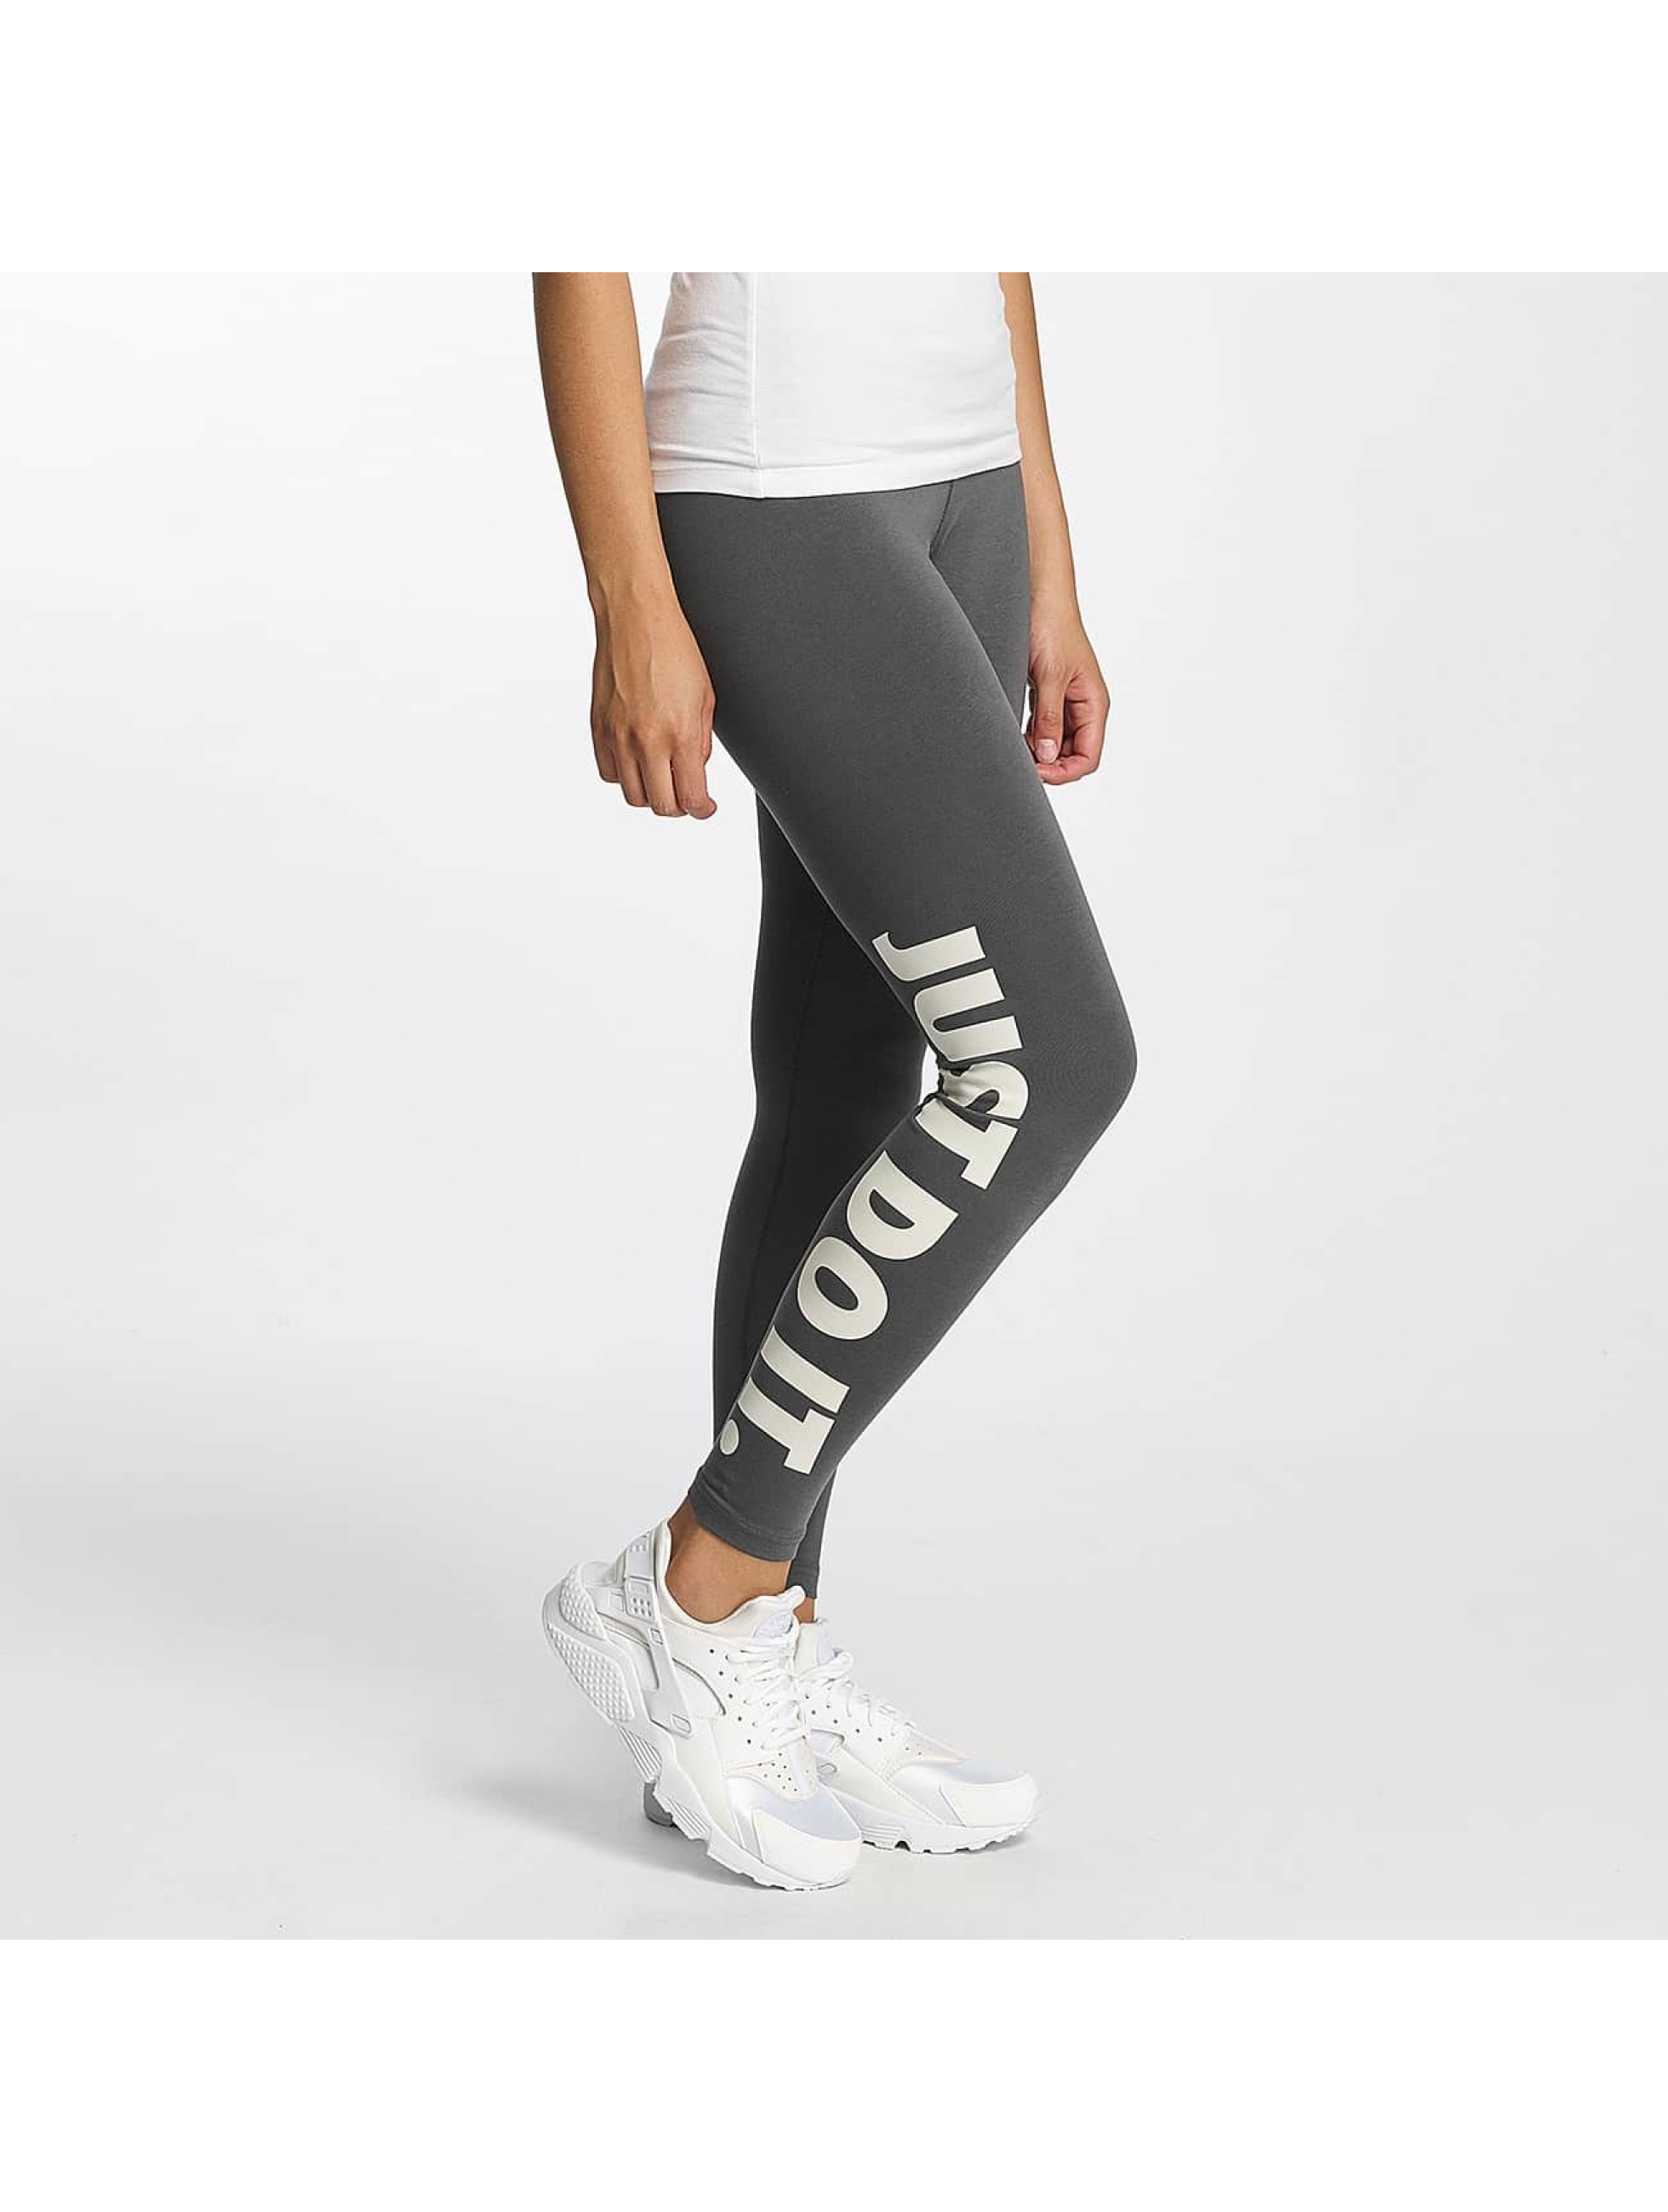 Nike Frauen Legging Leg-A-See Just Do It in grau